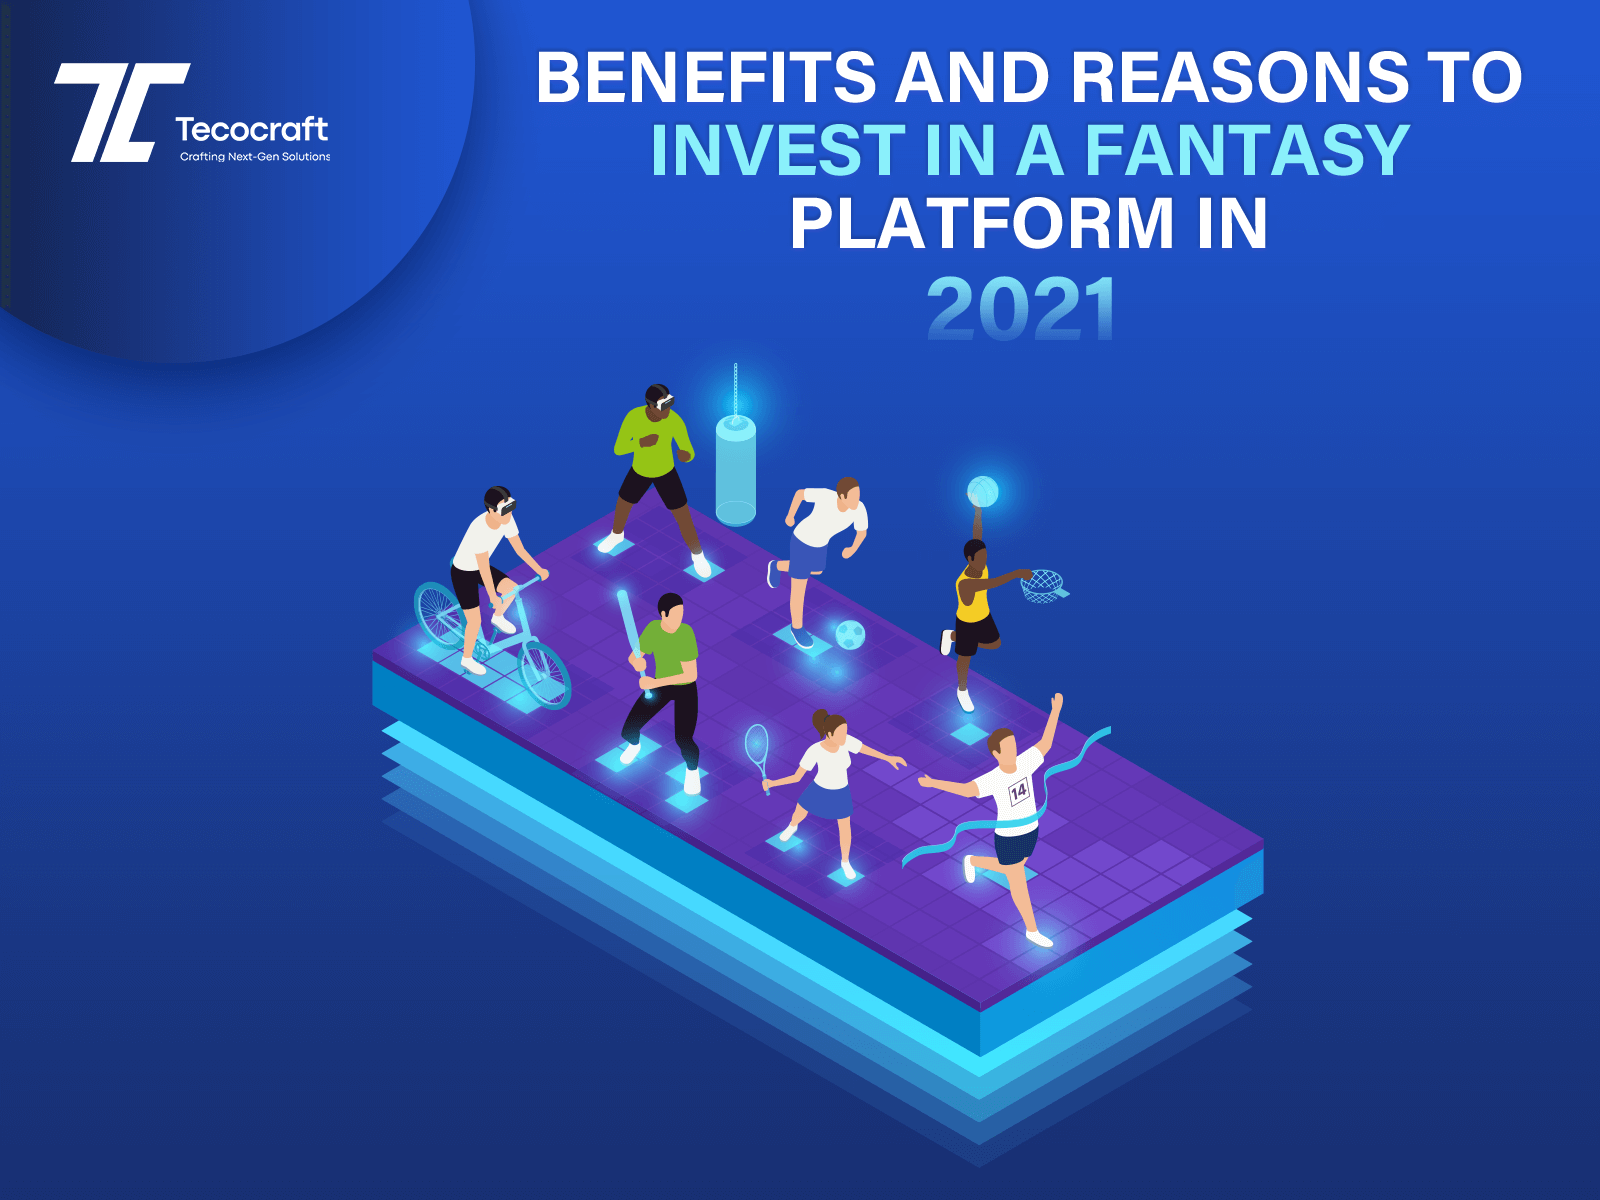 Benefits To Invest In A Fantasy Platform In 2021